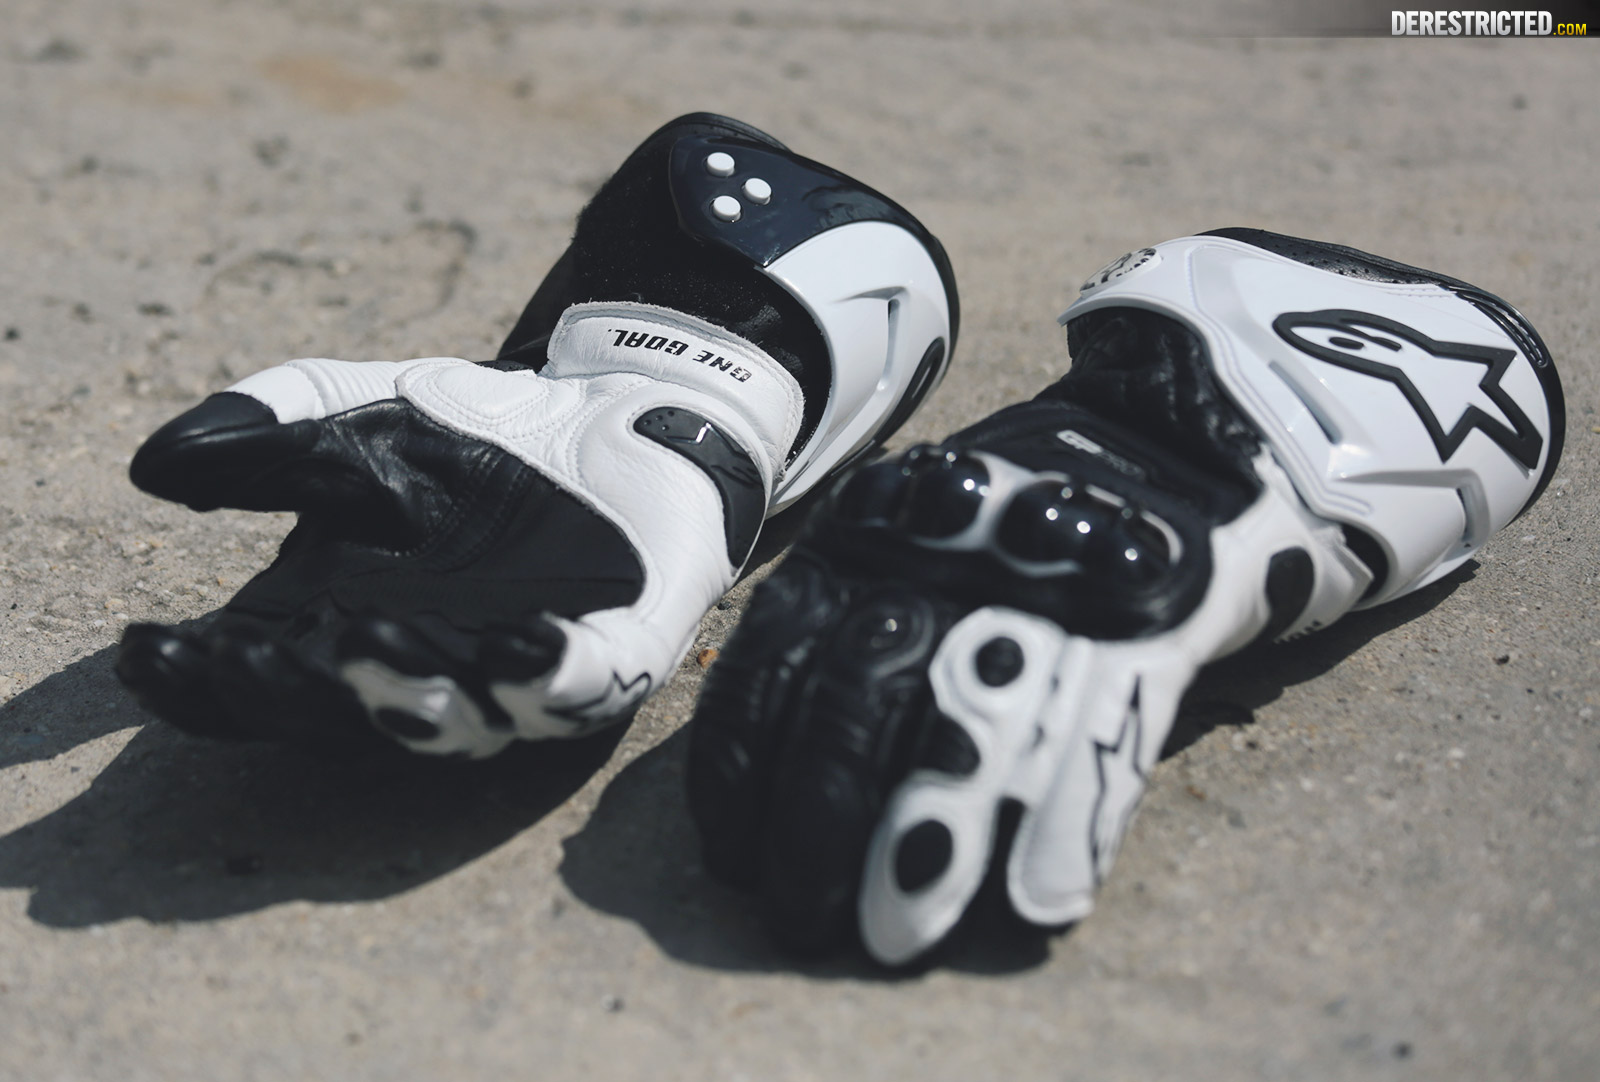 alpinestars-gp-pro-glove-review-02